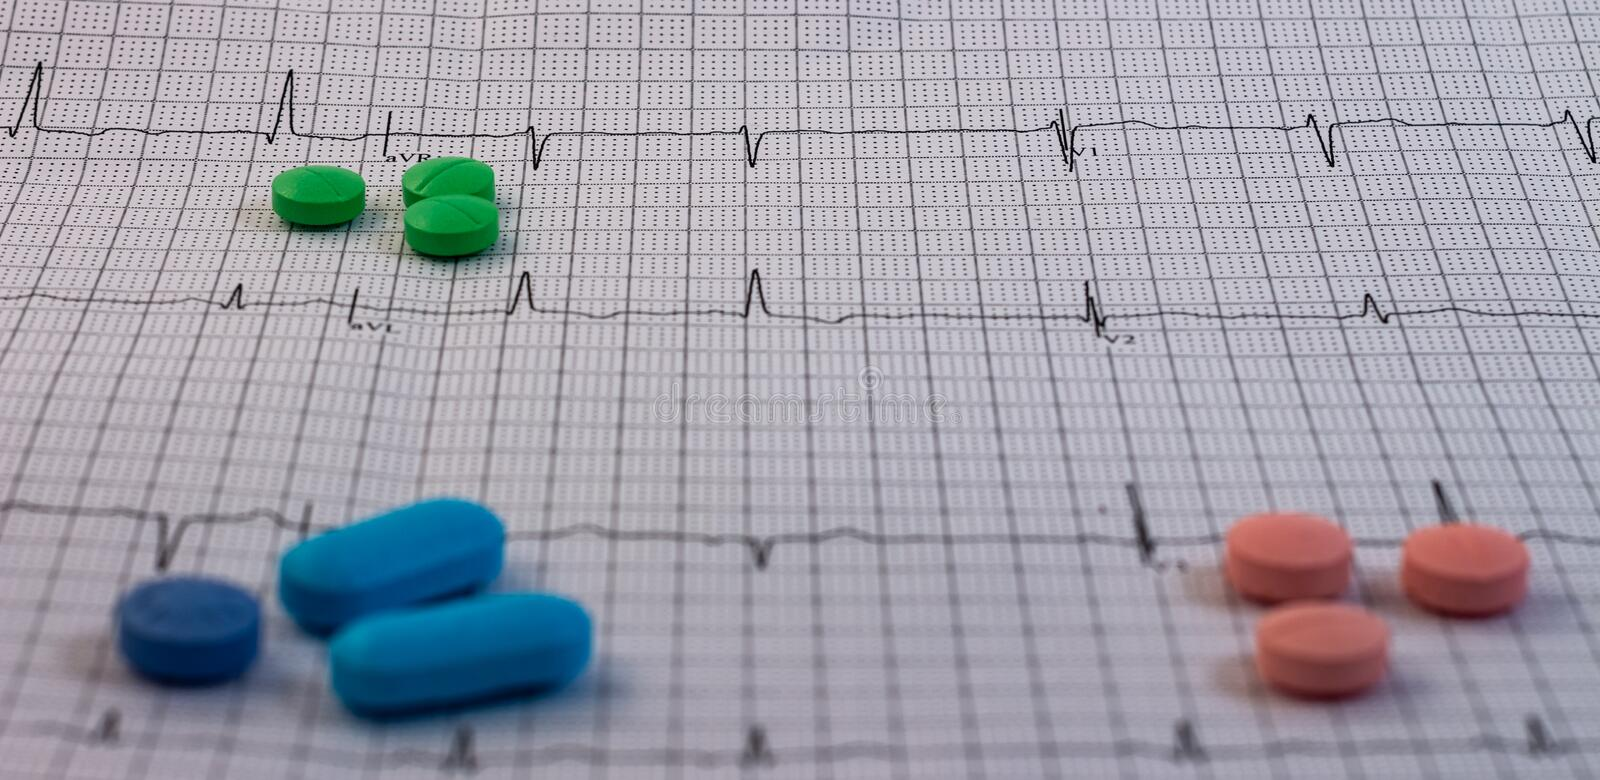 Pills and medicines of green color on an electrocardiogram royalty free stock images